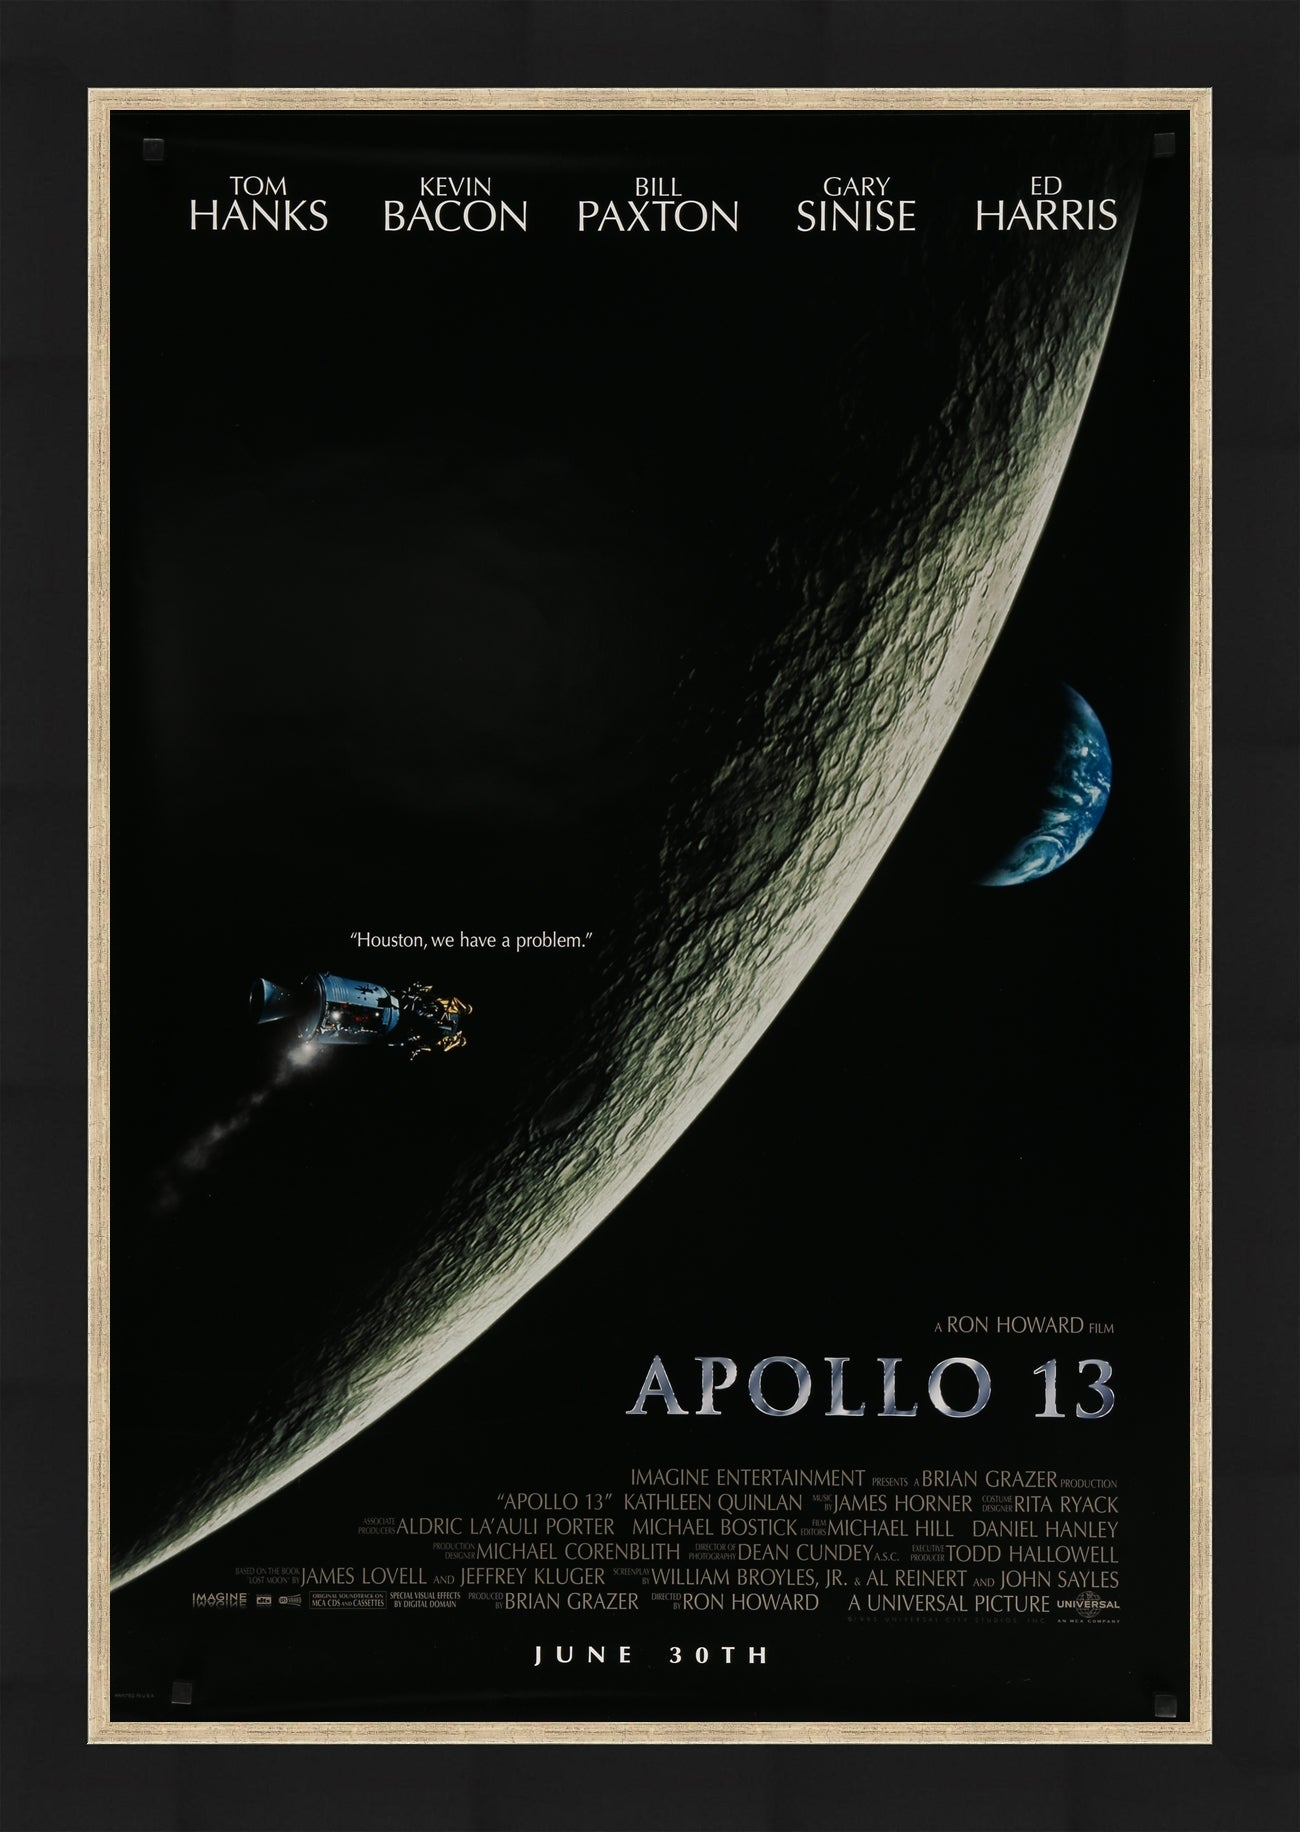 An original movie poster for the film Apollo 13